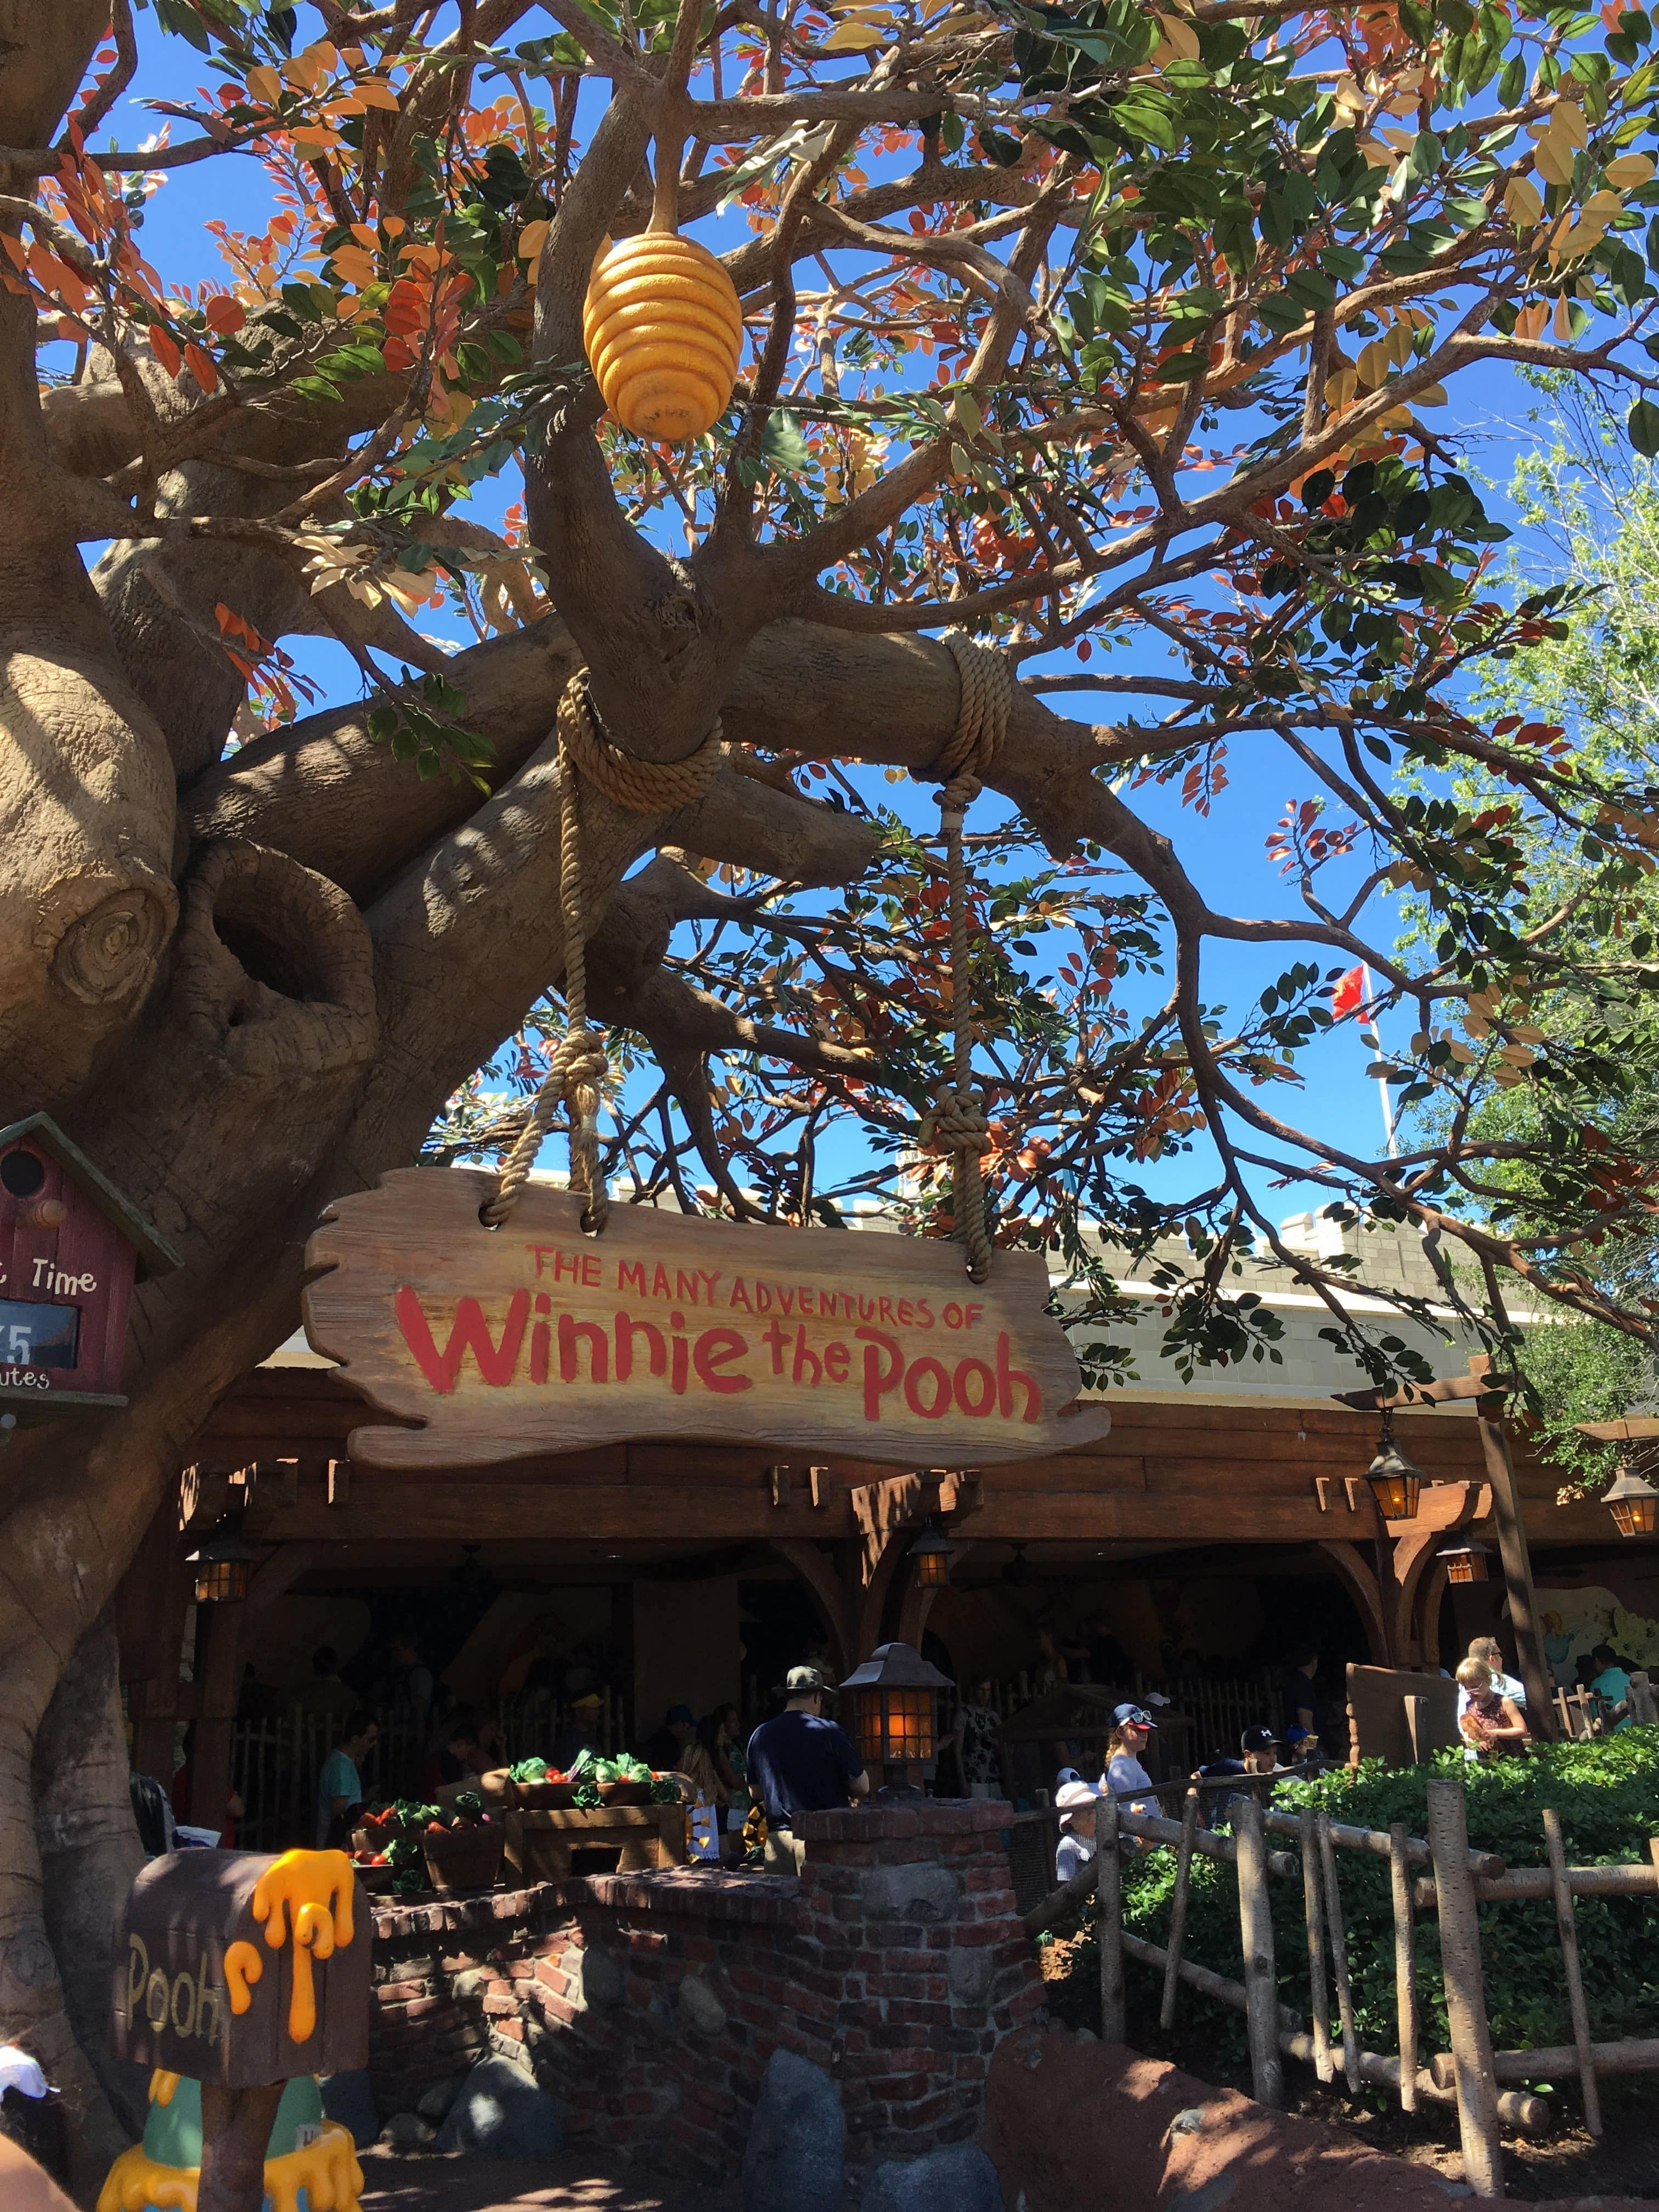 outside the winnie the pooh ride, a tree with the winnie the pooh sign and theme